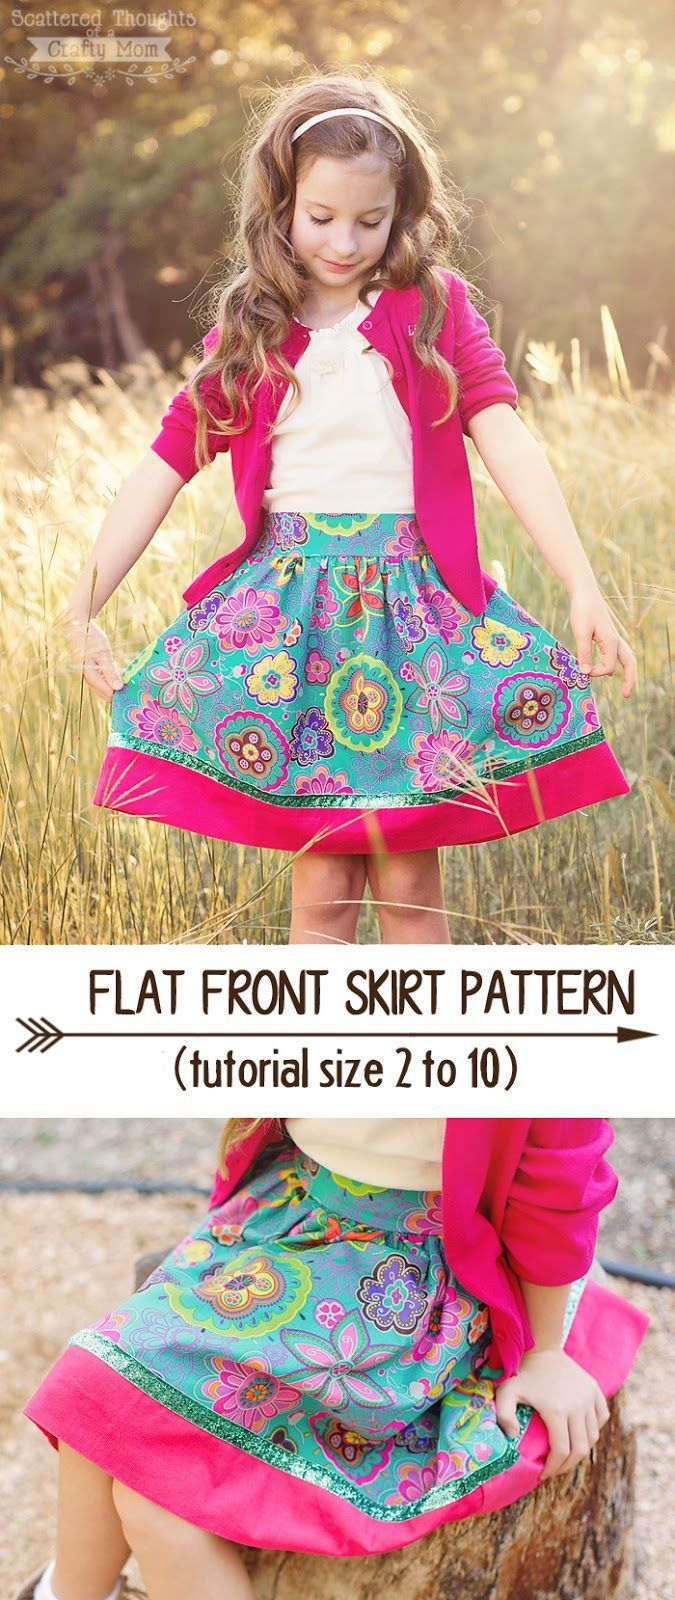 Free Flat Front skirt patterns for girls. Size 2 to 10. #sewing